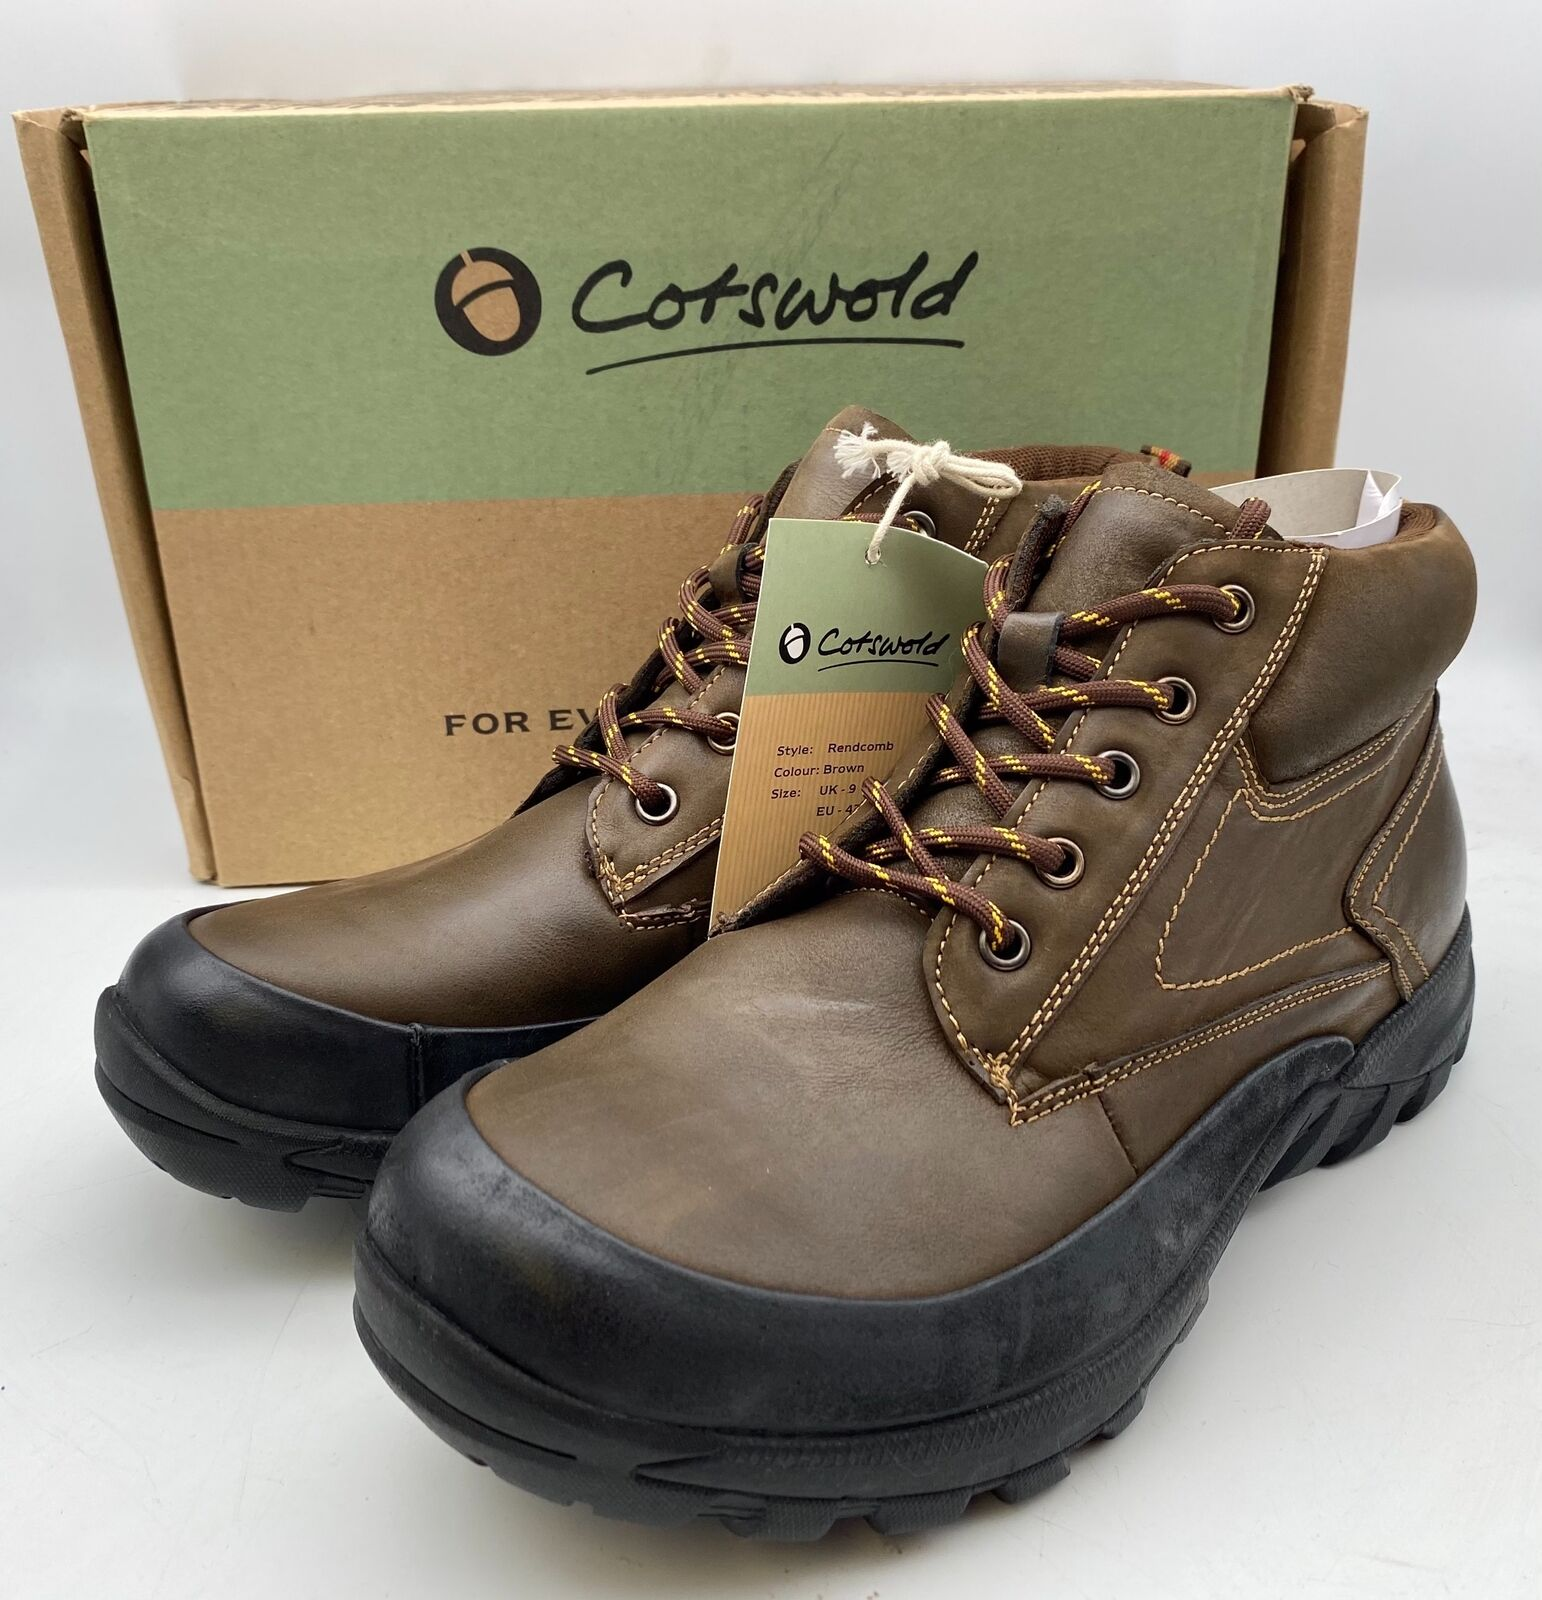 New & Boxed Cotswold Rendcomb Shoes Brown Leather Boots Mens Size UK 9 / EU 43